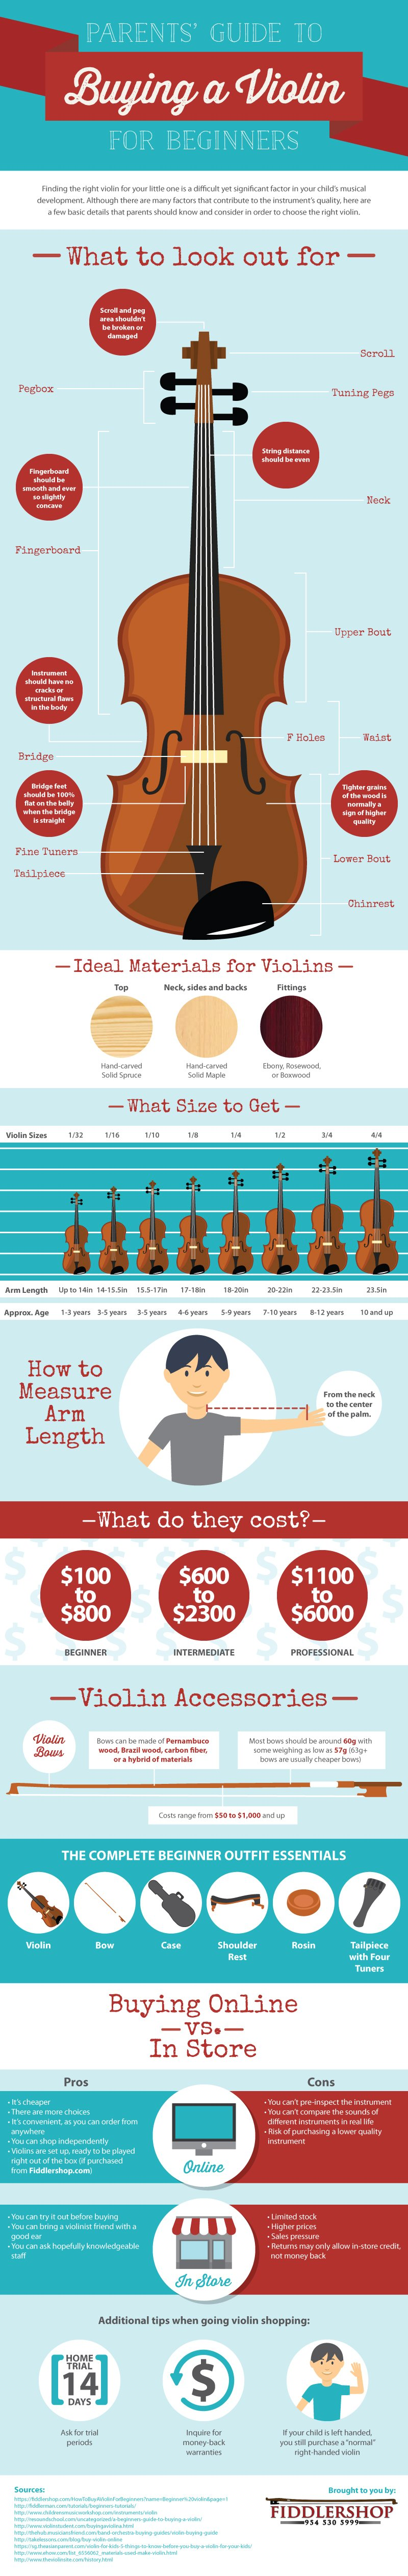 A Parent's Guide to Buying a Violin: Everything you need to know to choose the right instrument.